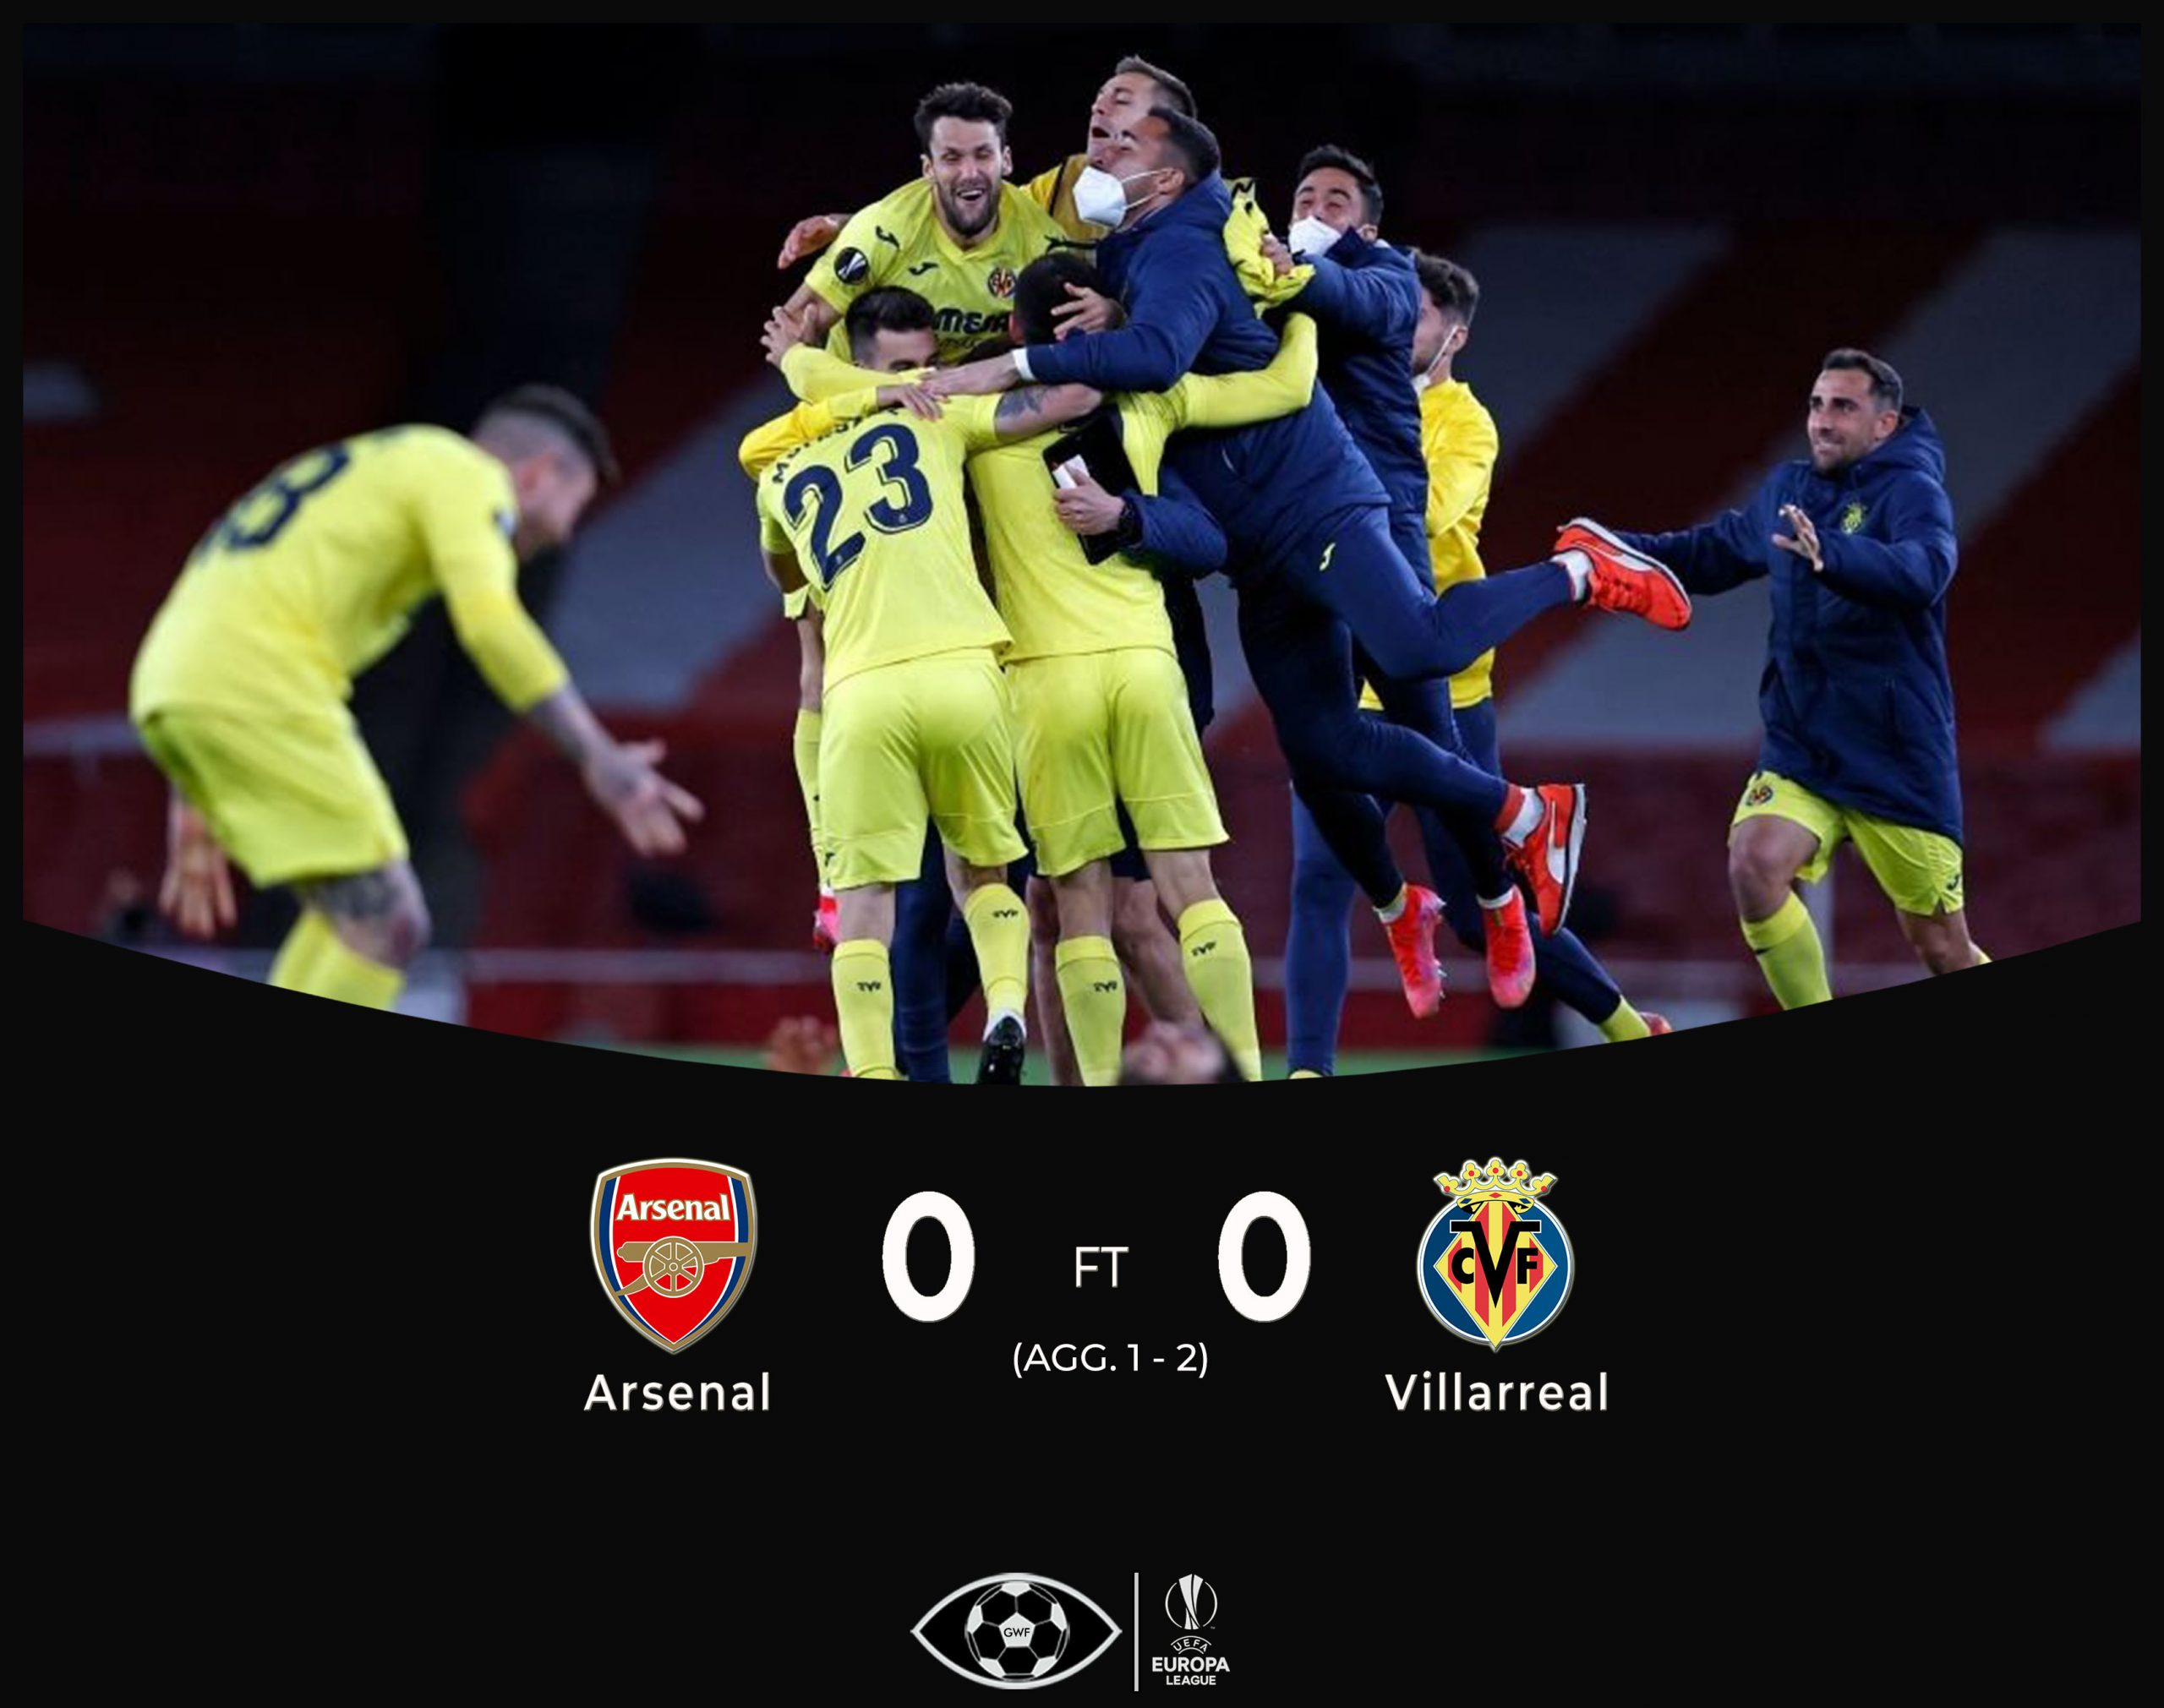 BREAKING: Villarreal Knocks Arsenal Out Of Europa League Final - #ARSVIL